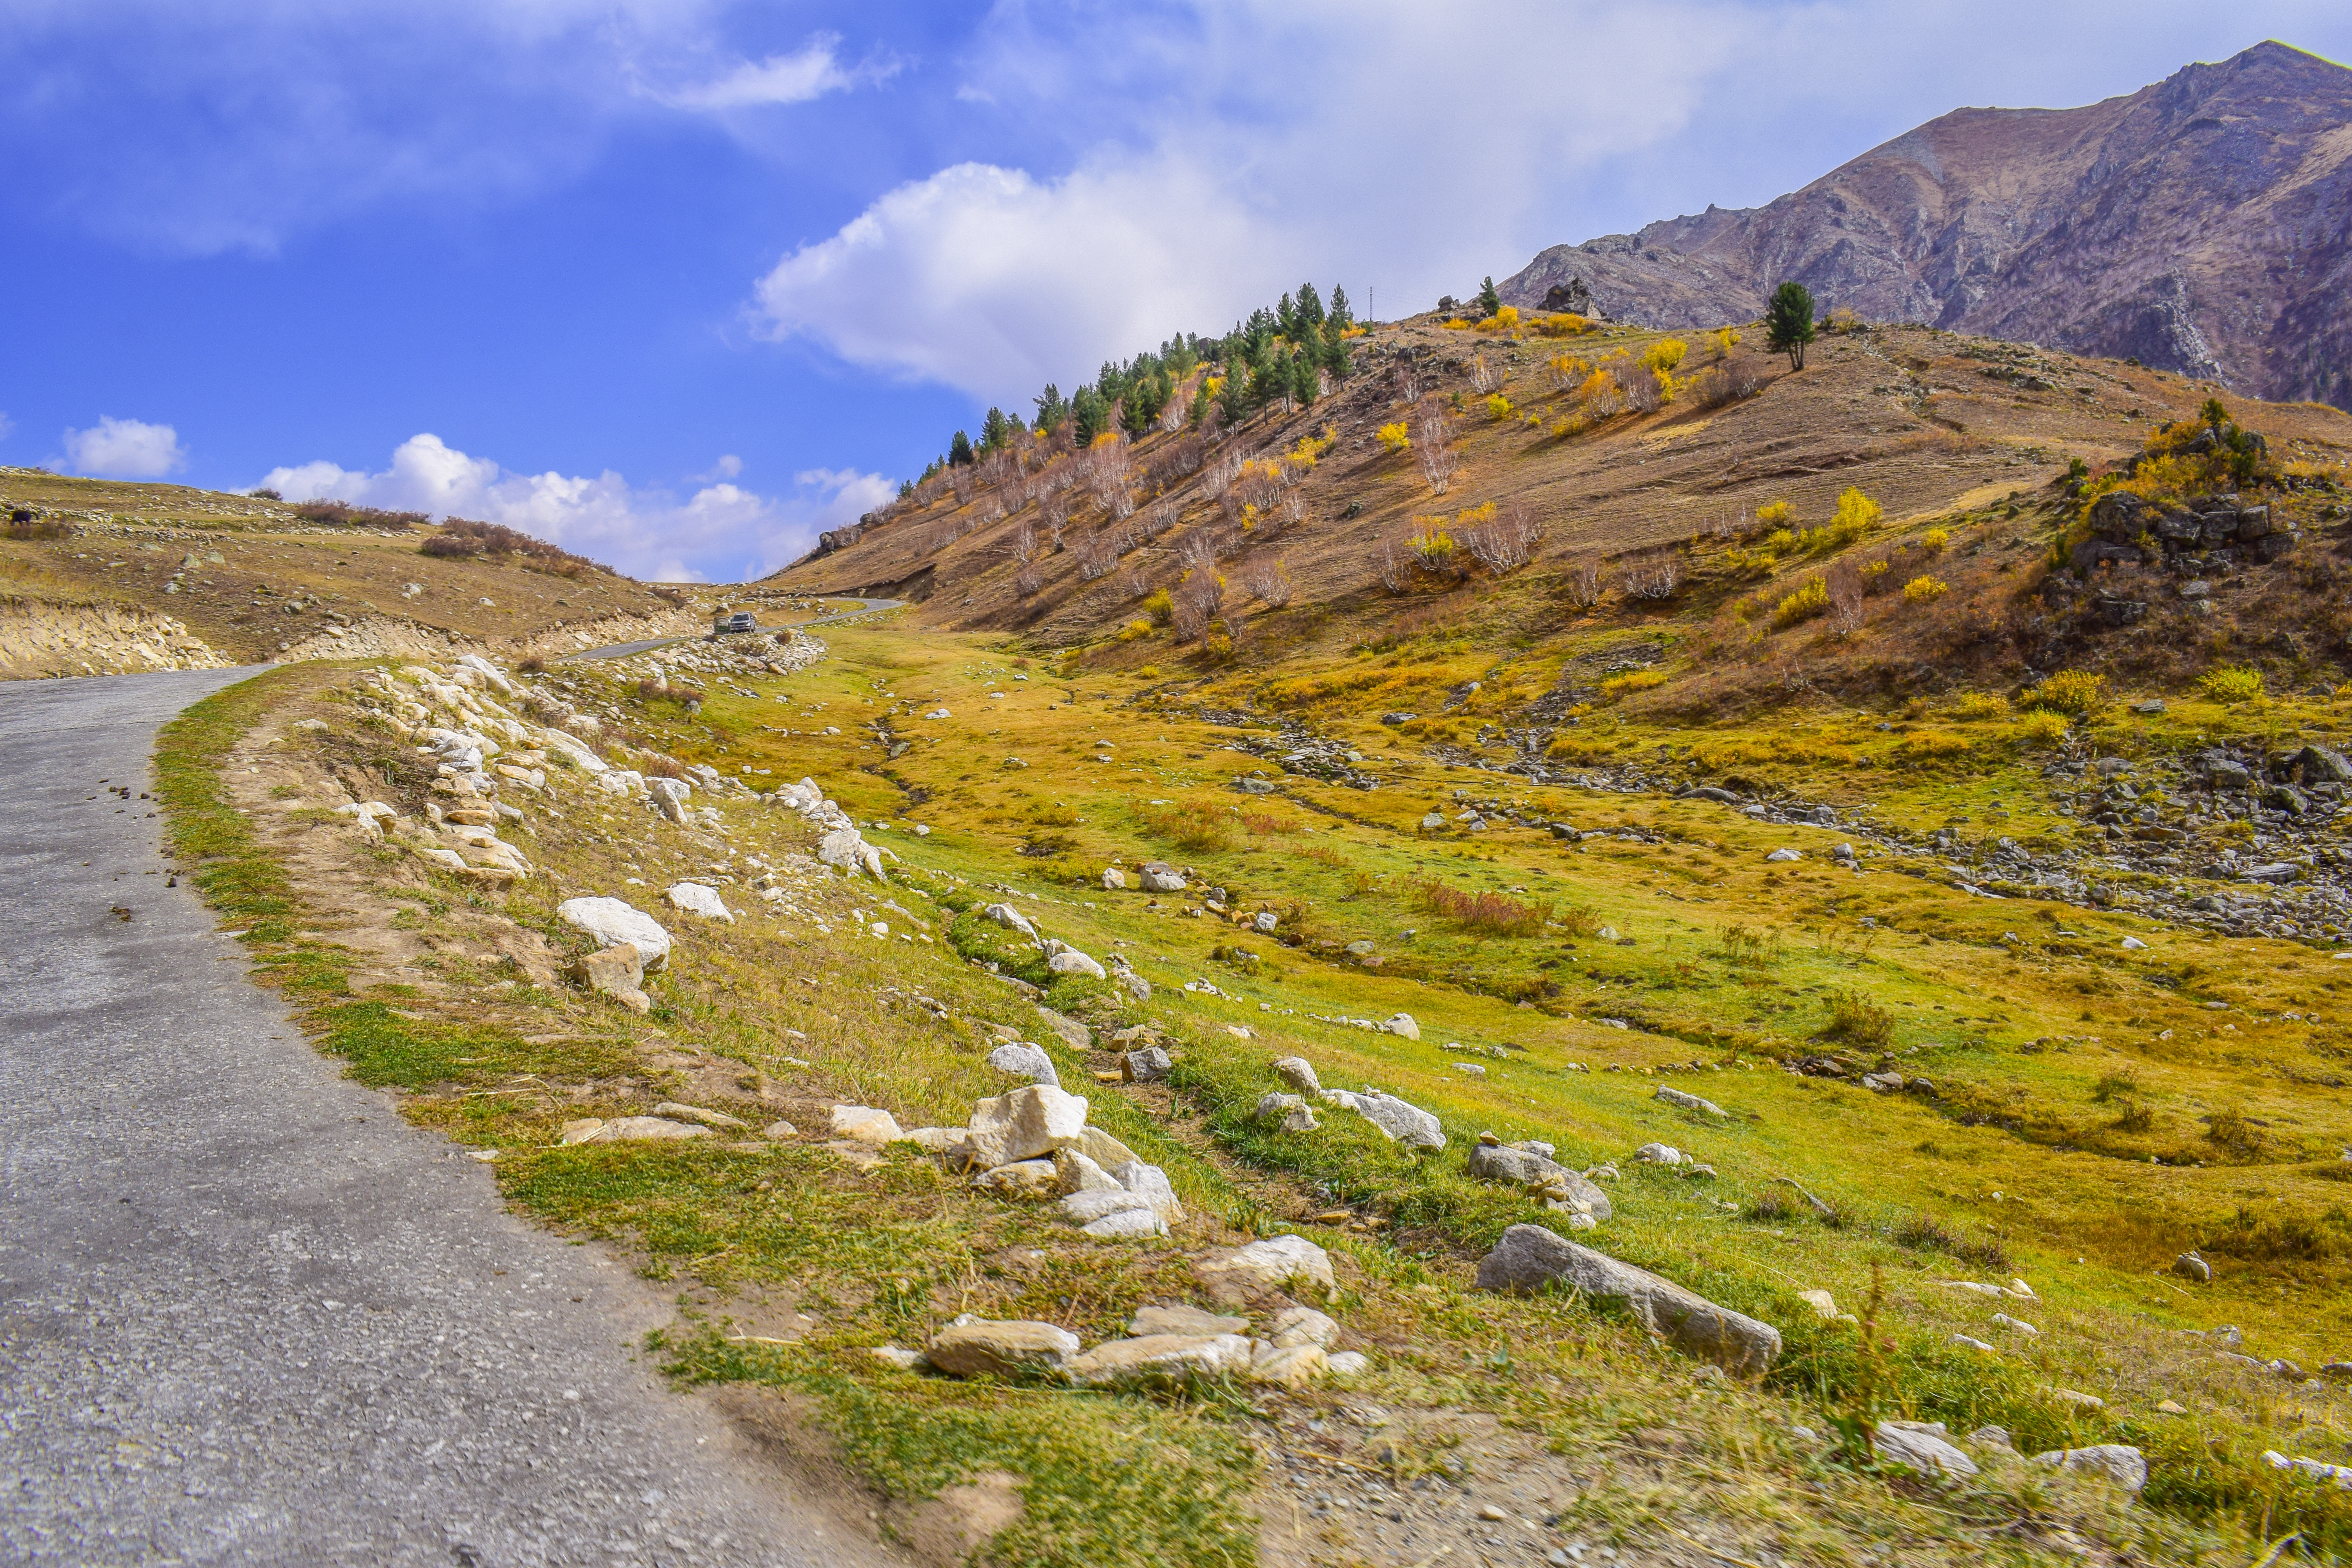 Things to explore in Pakistan - Deosai National Park